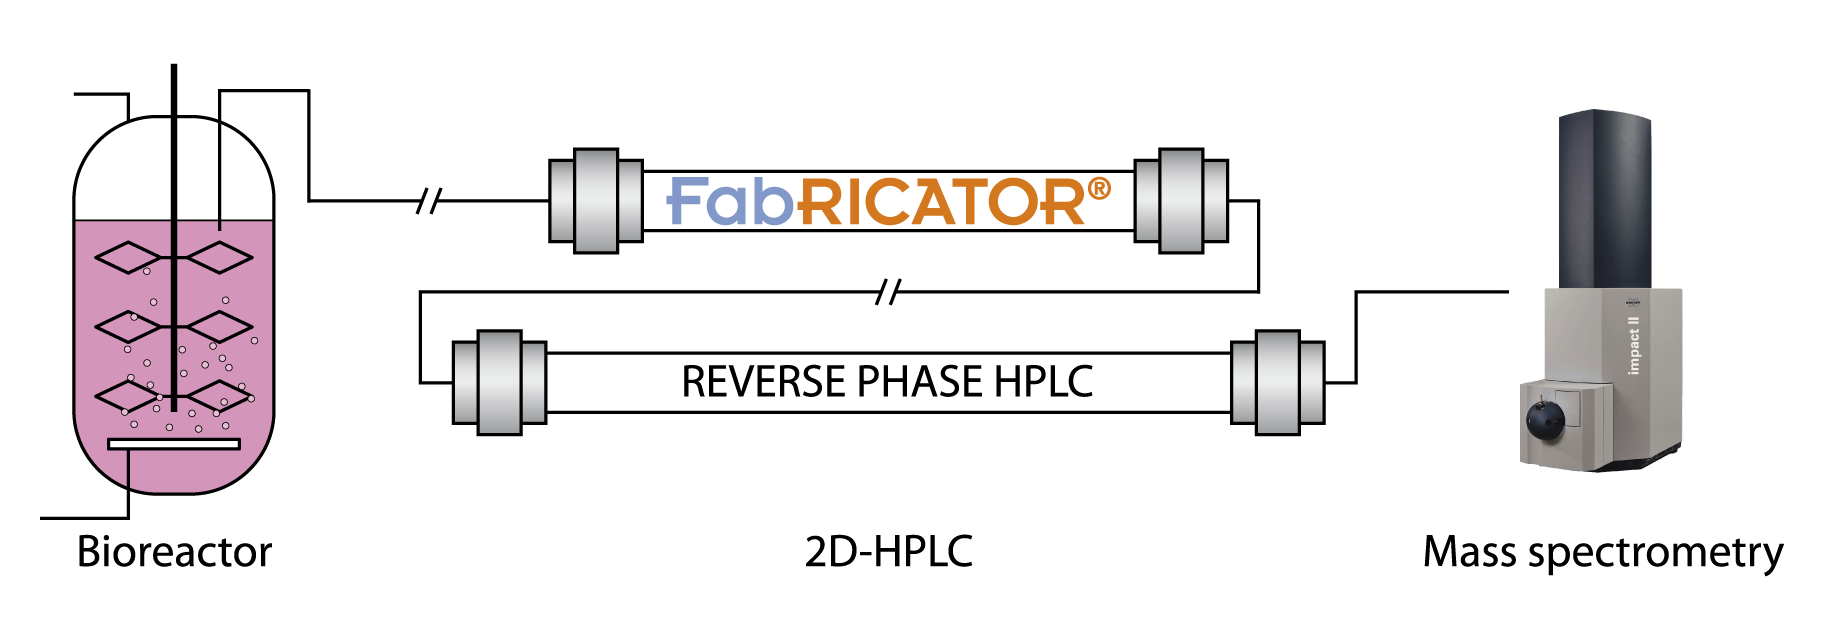 Fabricator-HPLC middle level flow